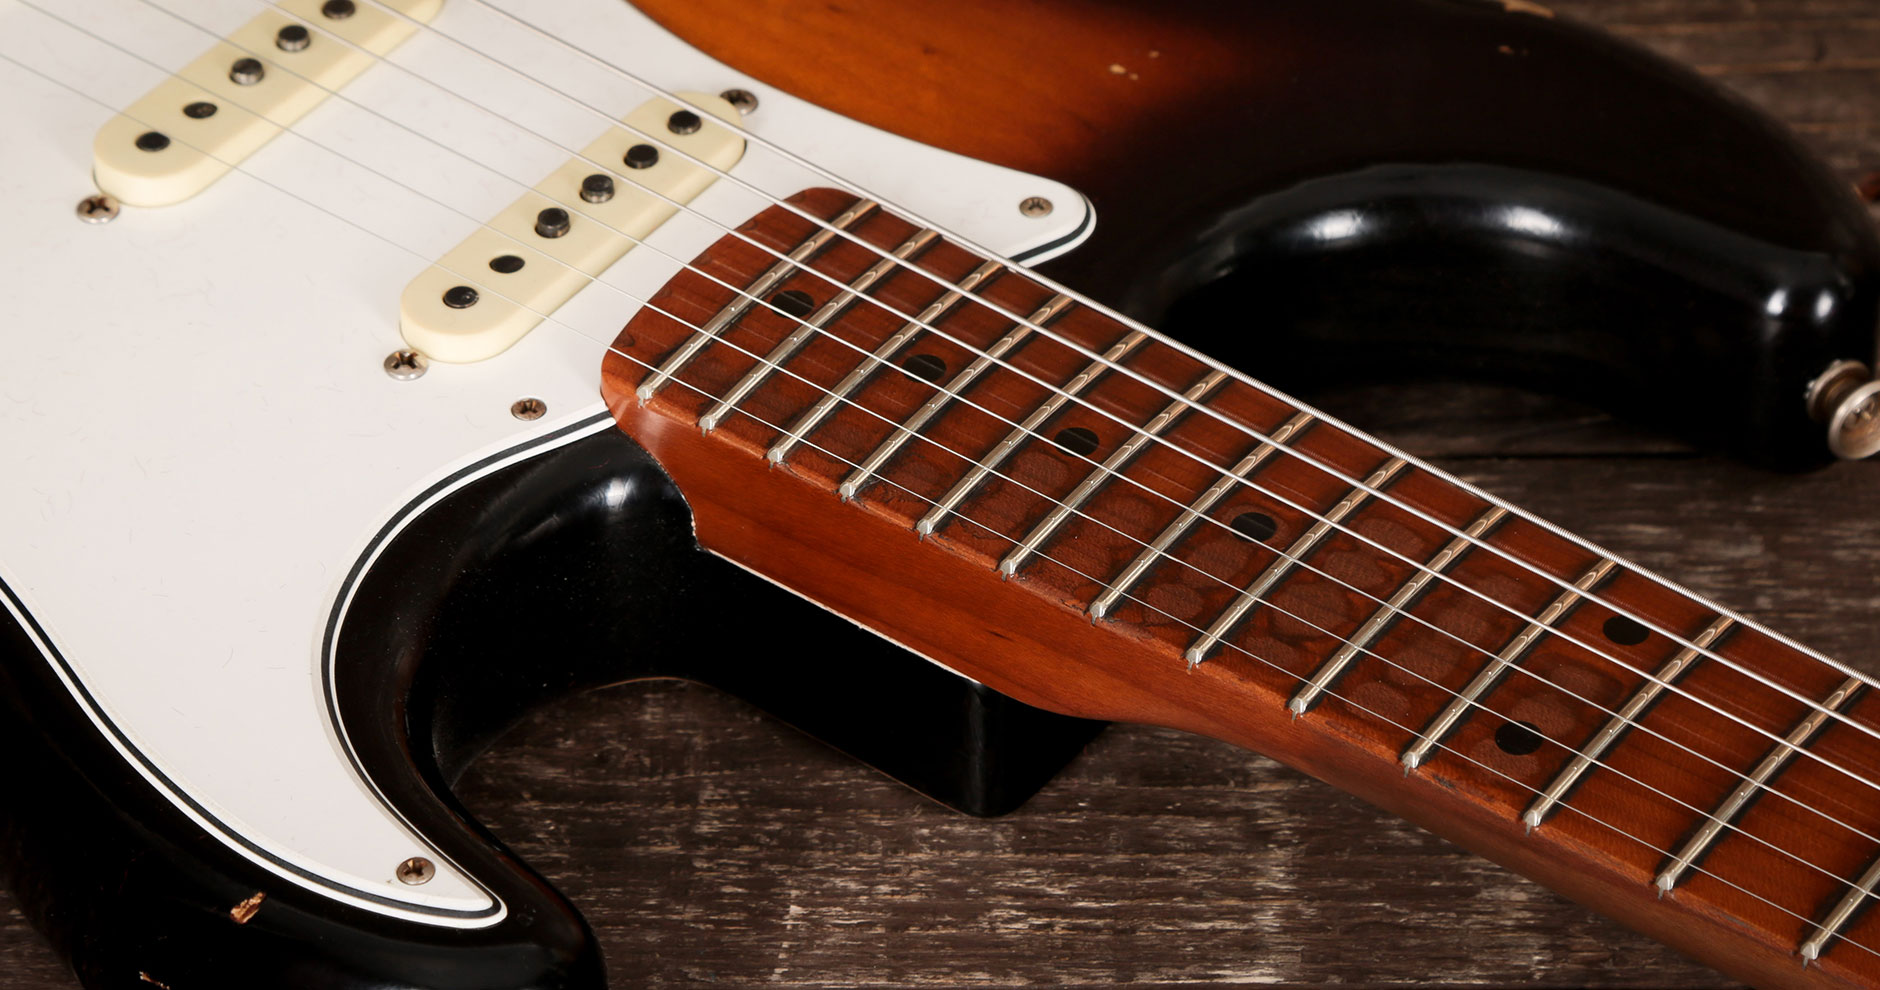 illustrative image of Coated Vs. Uncoated Guitar Strings